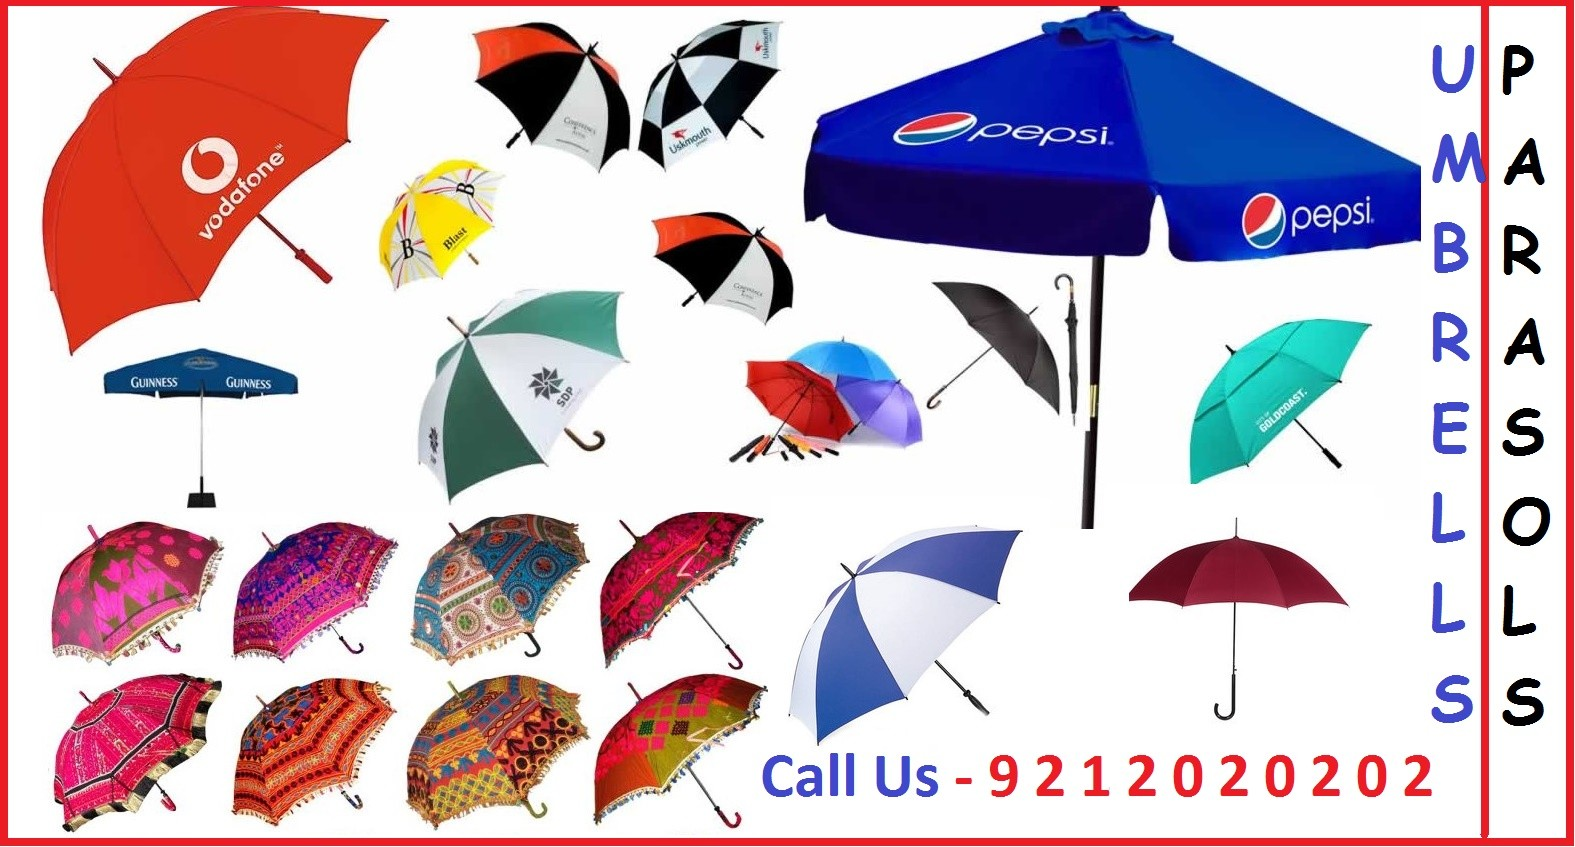 bdd00ec4e9db3 Advertising Umbrella Manufacturers, Suppliers in New Delhi, Supply all over  India